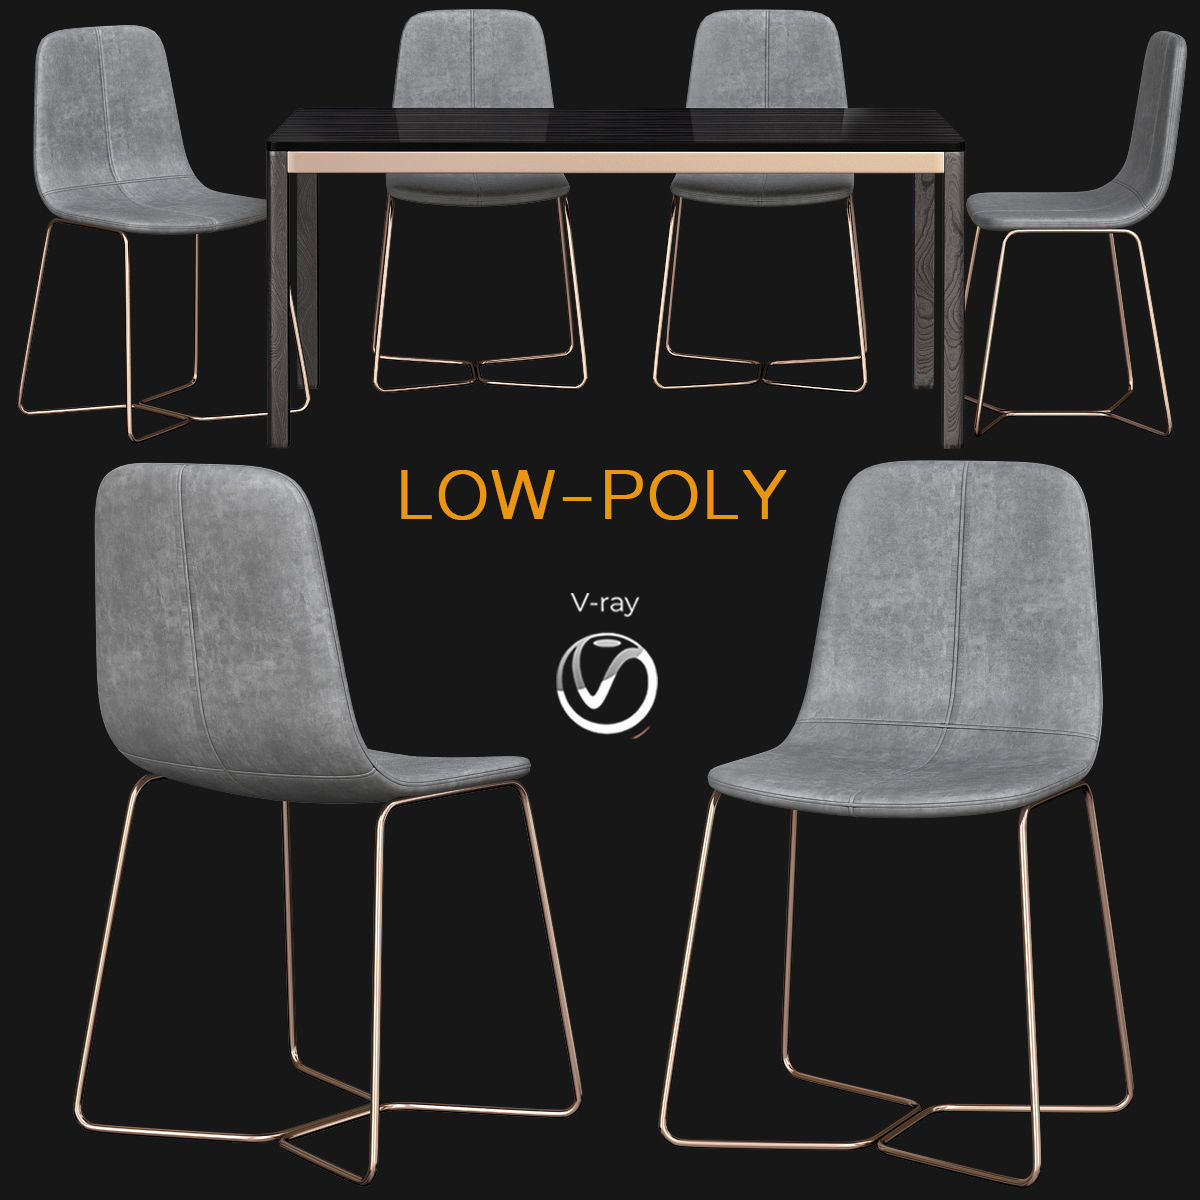 3d Model Realtime Slope Leather Dining Chair West Elm